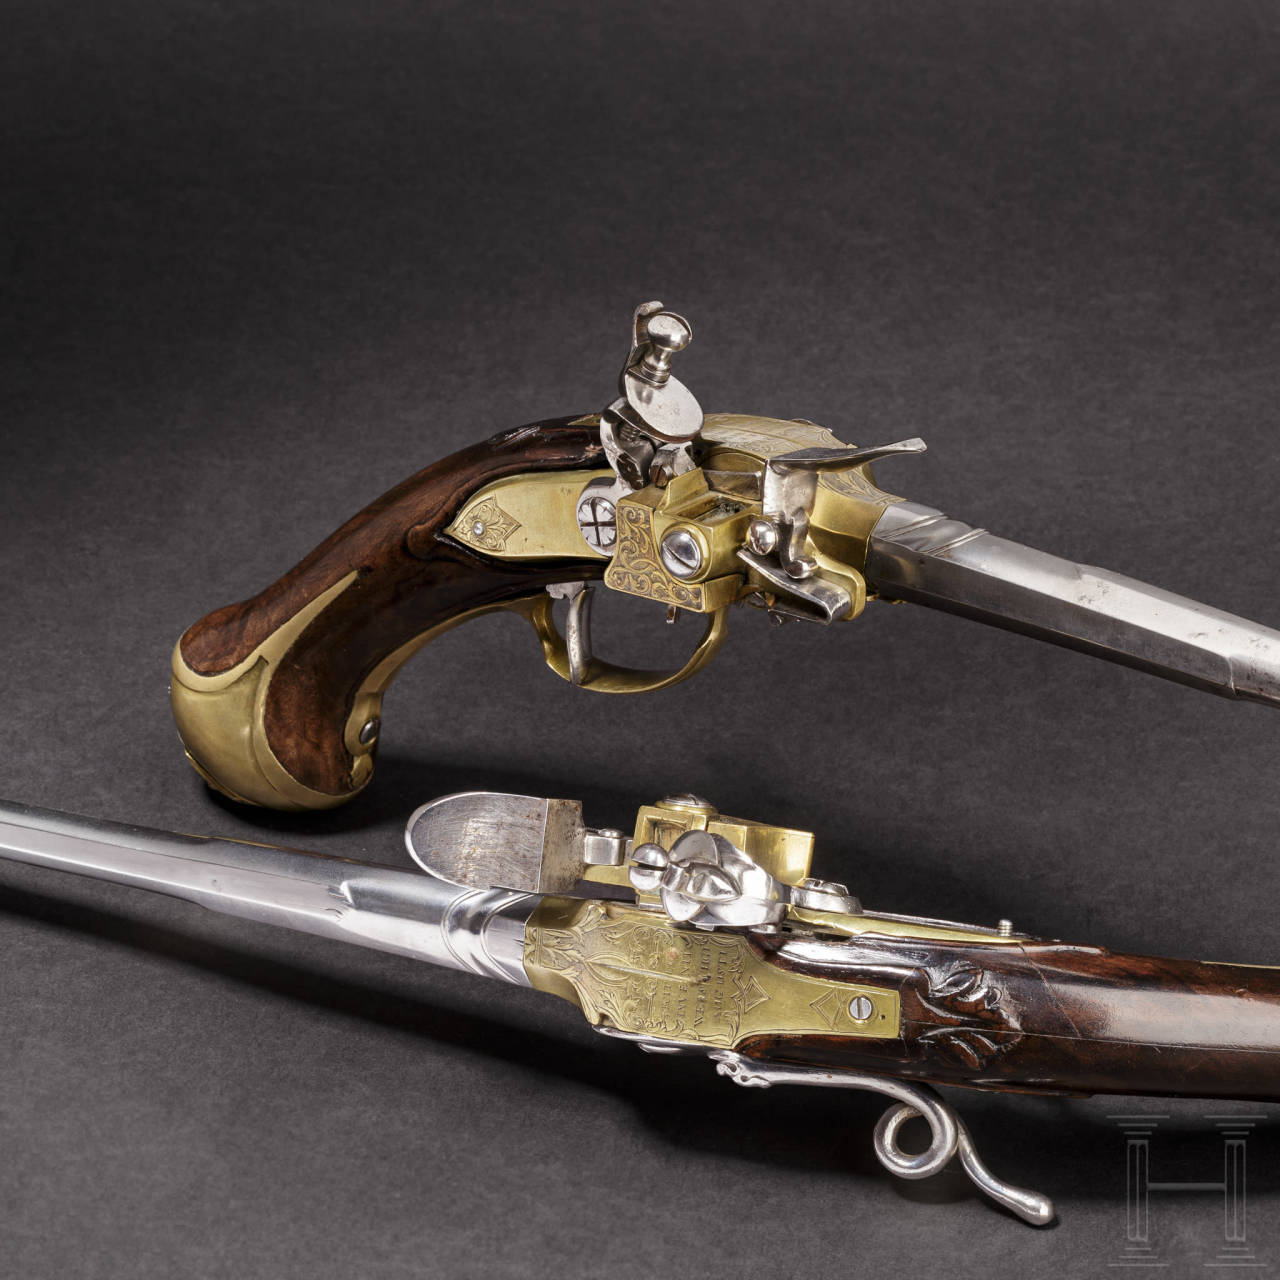 A pair of unusual self-loading flintlock pistols, Emanuel Wetschgin in Augsburg, circa 1710